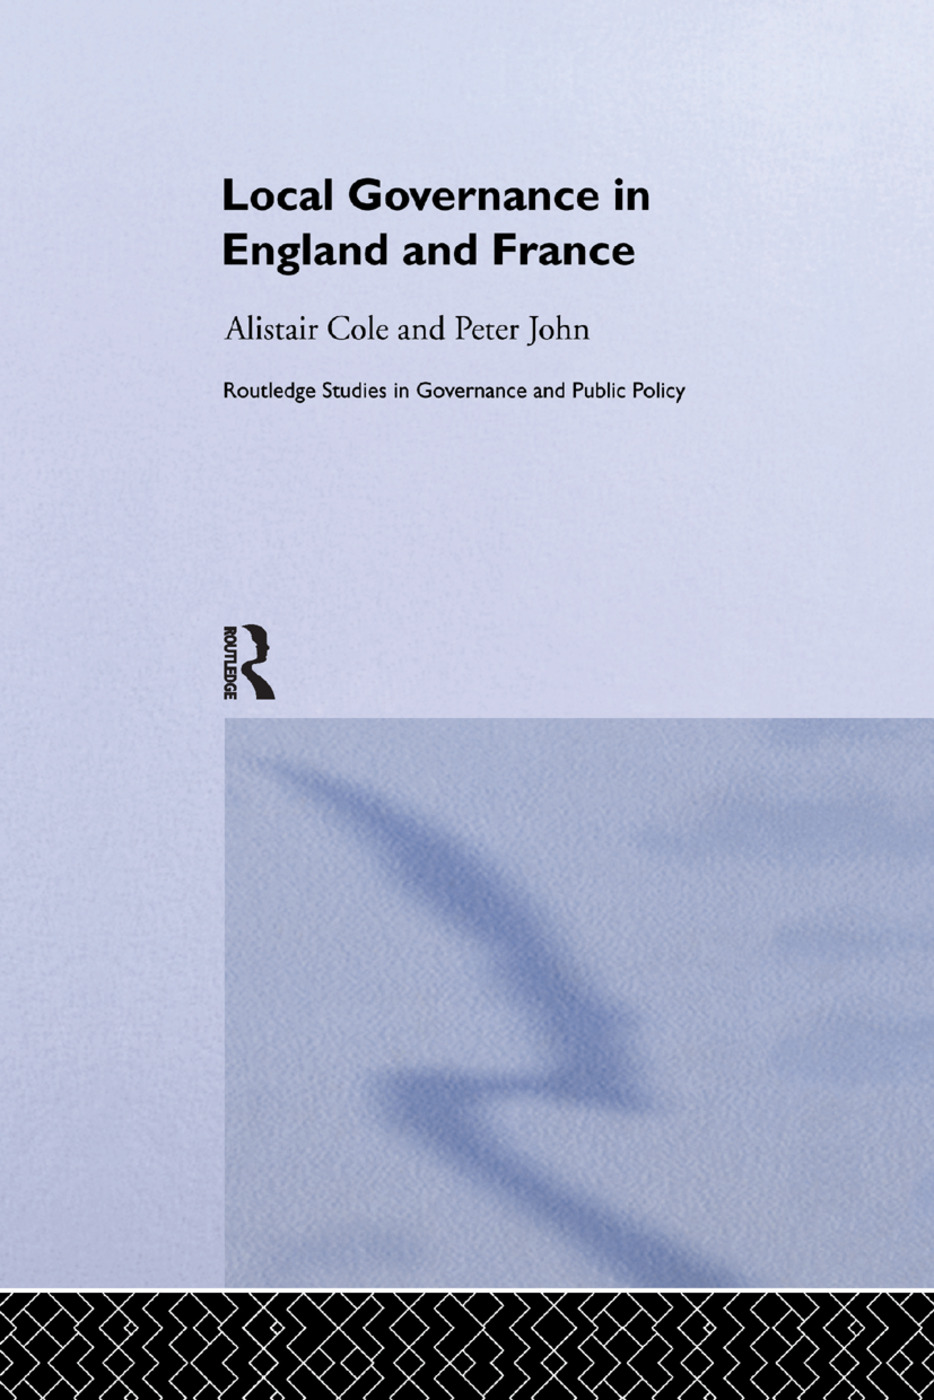 Local Governance in England and France